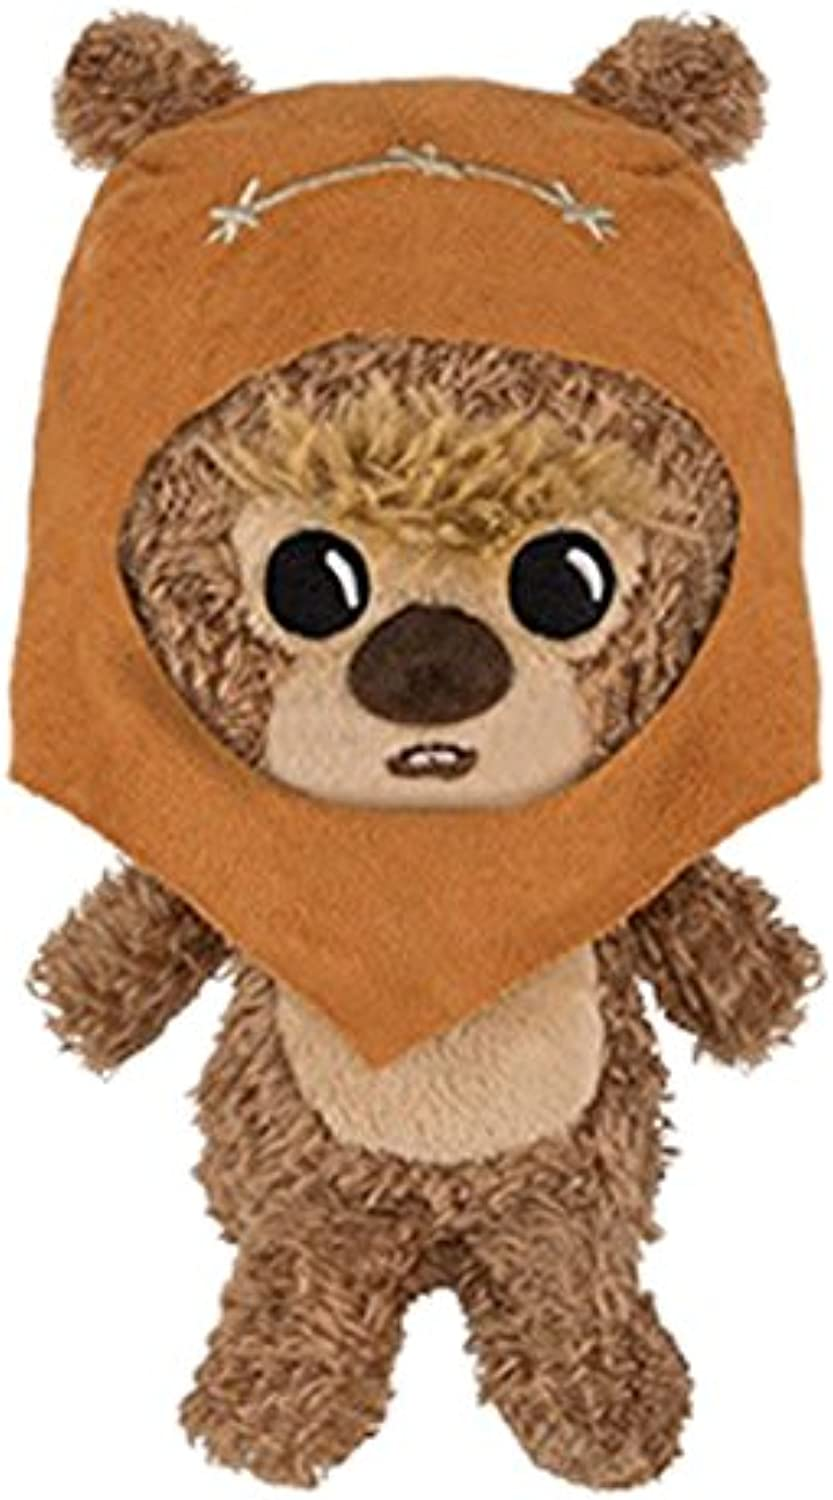 FunKo Galactic Plushies Star Wars Wicket Plush